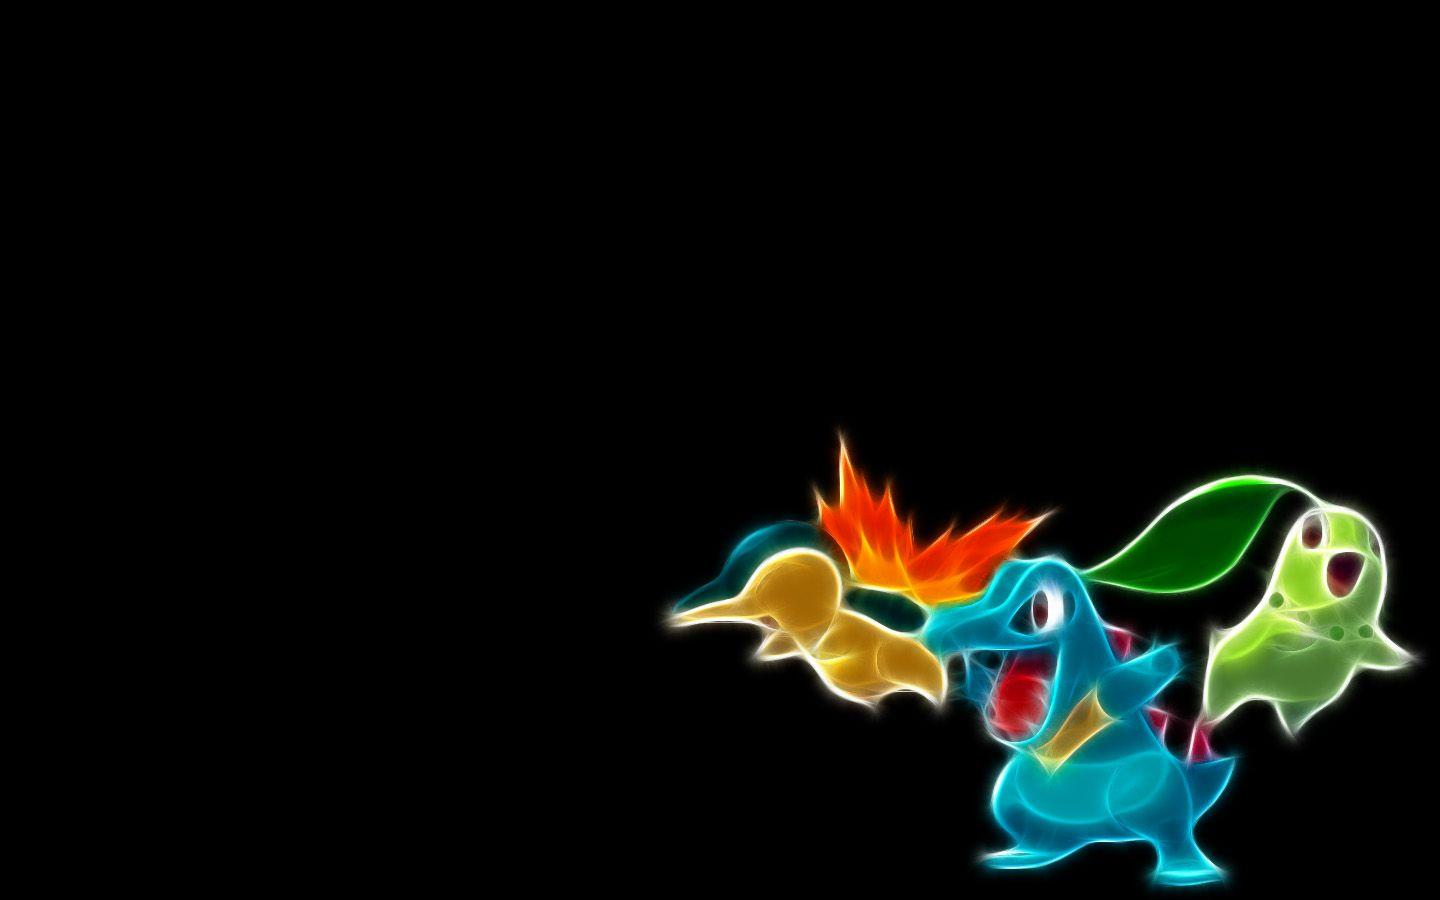 Pokémon Wallpaper and Background Image | 1440x900 | ID:119635